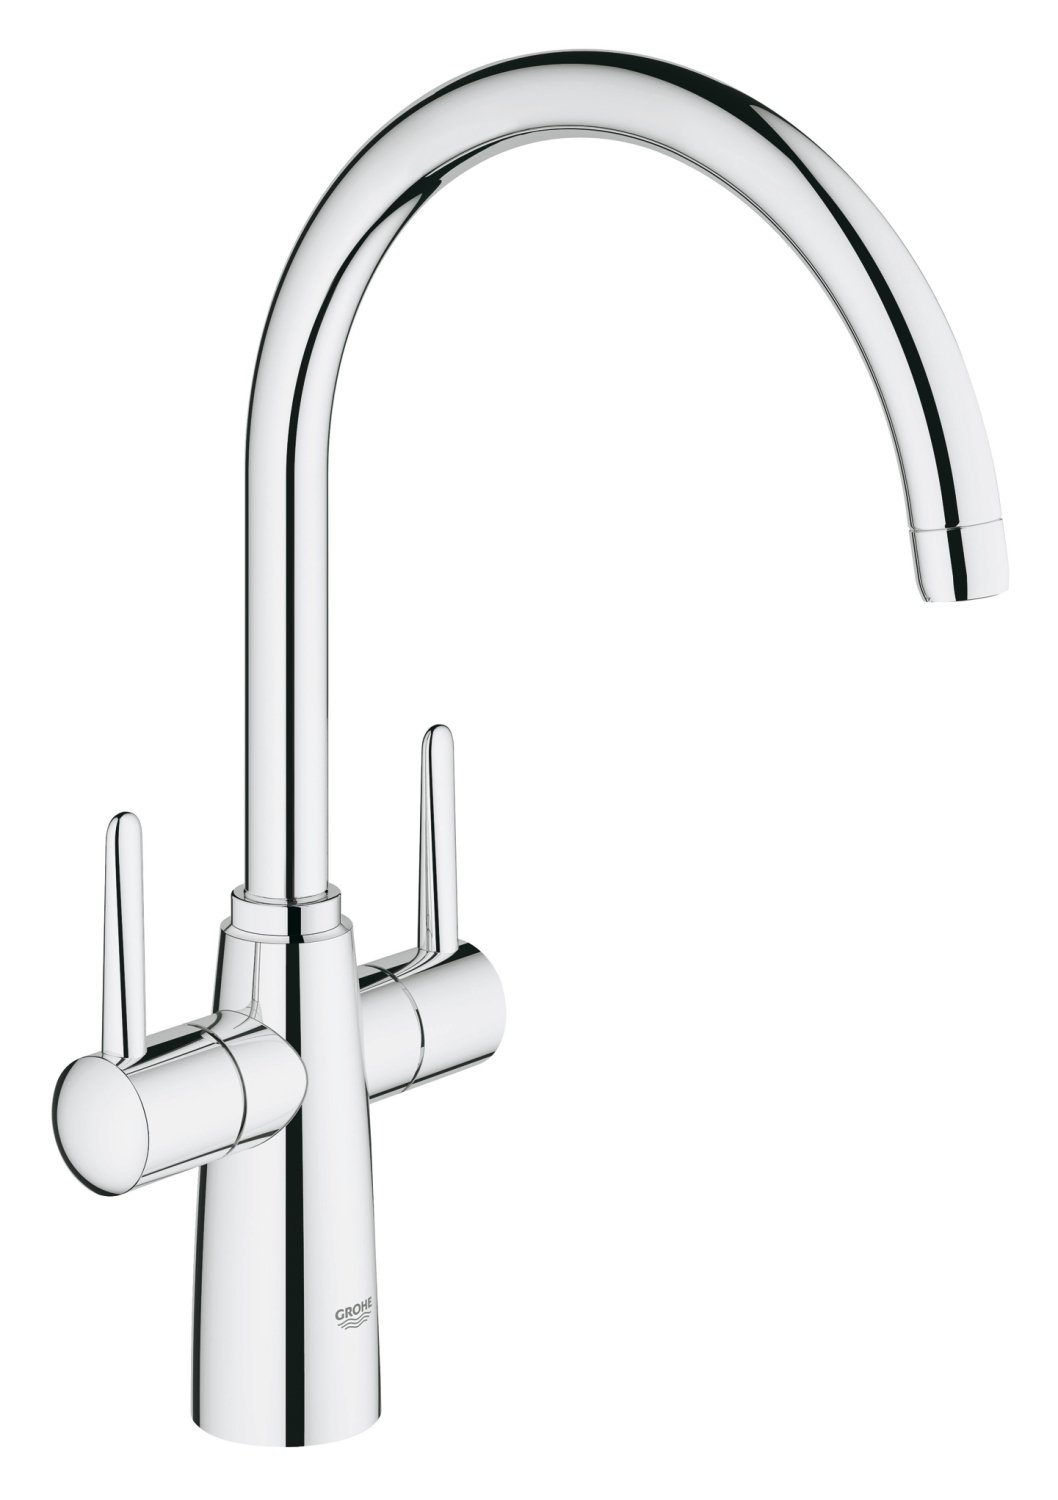 Famous Grohe Kitchen Taps Illustration - Interior Design Ideas ...